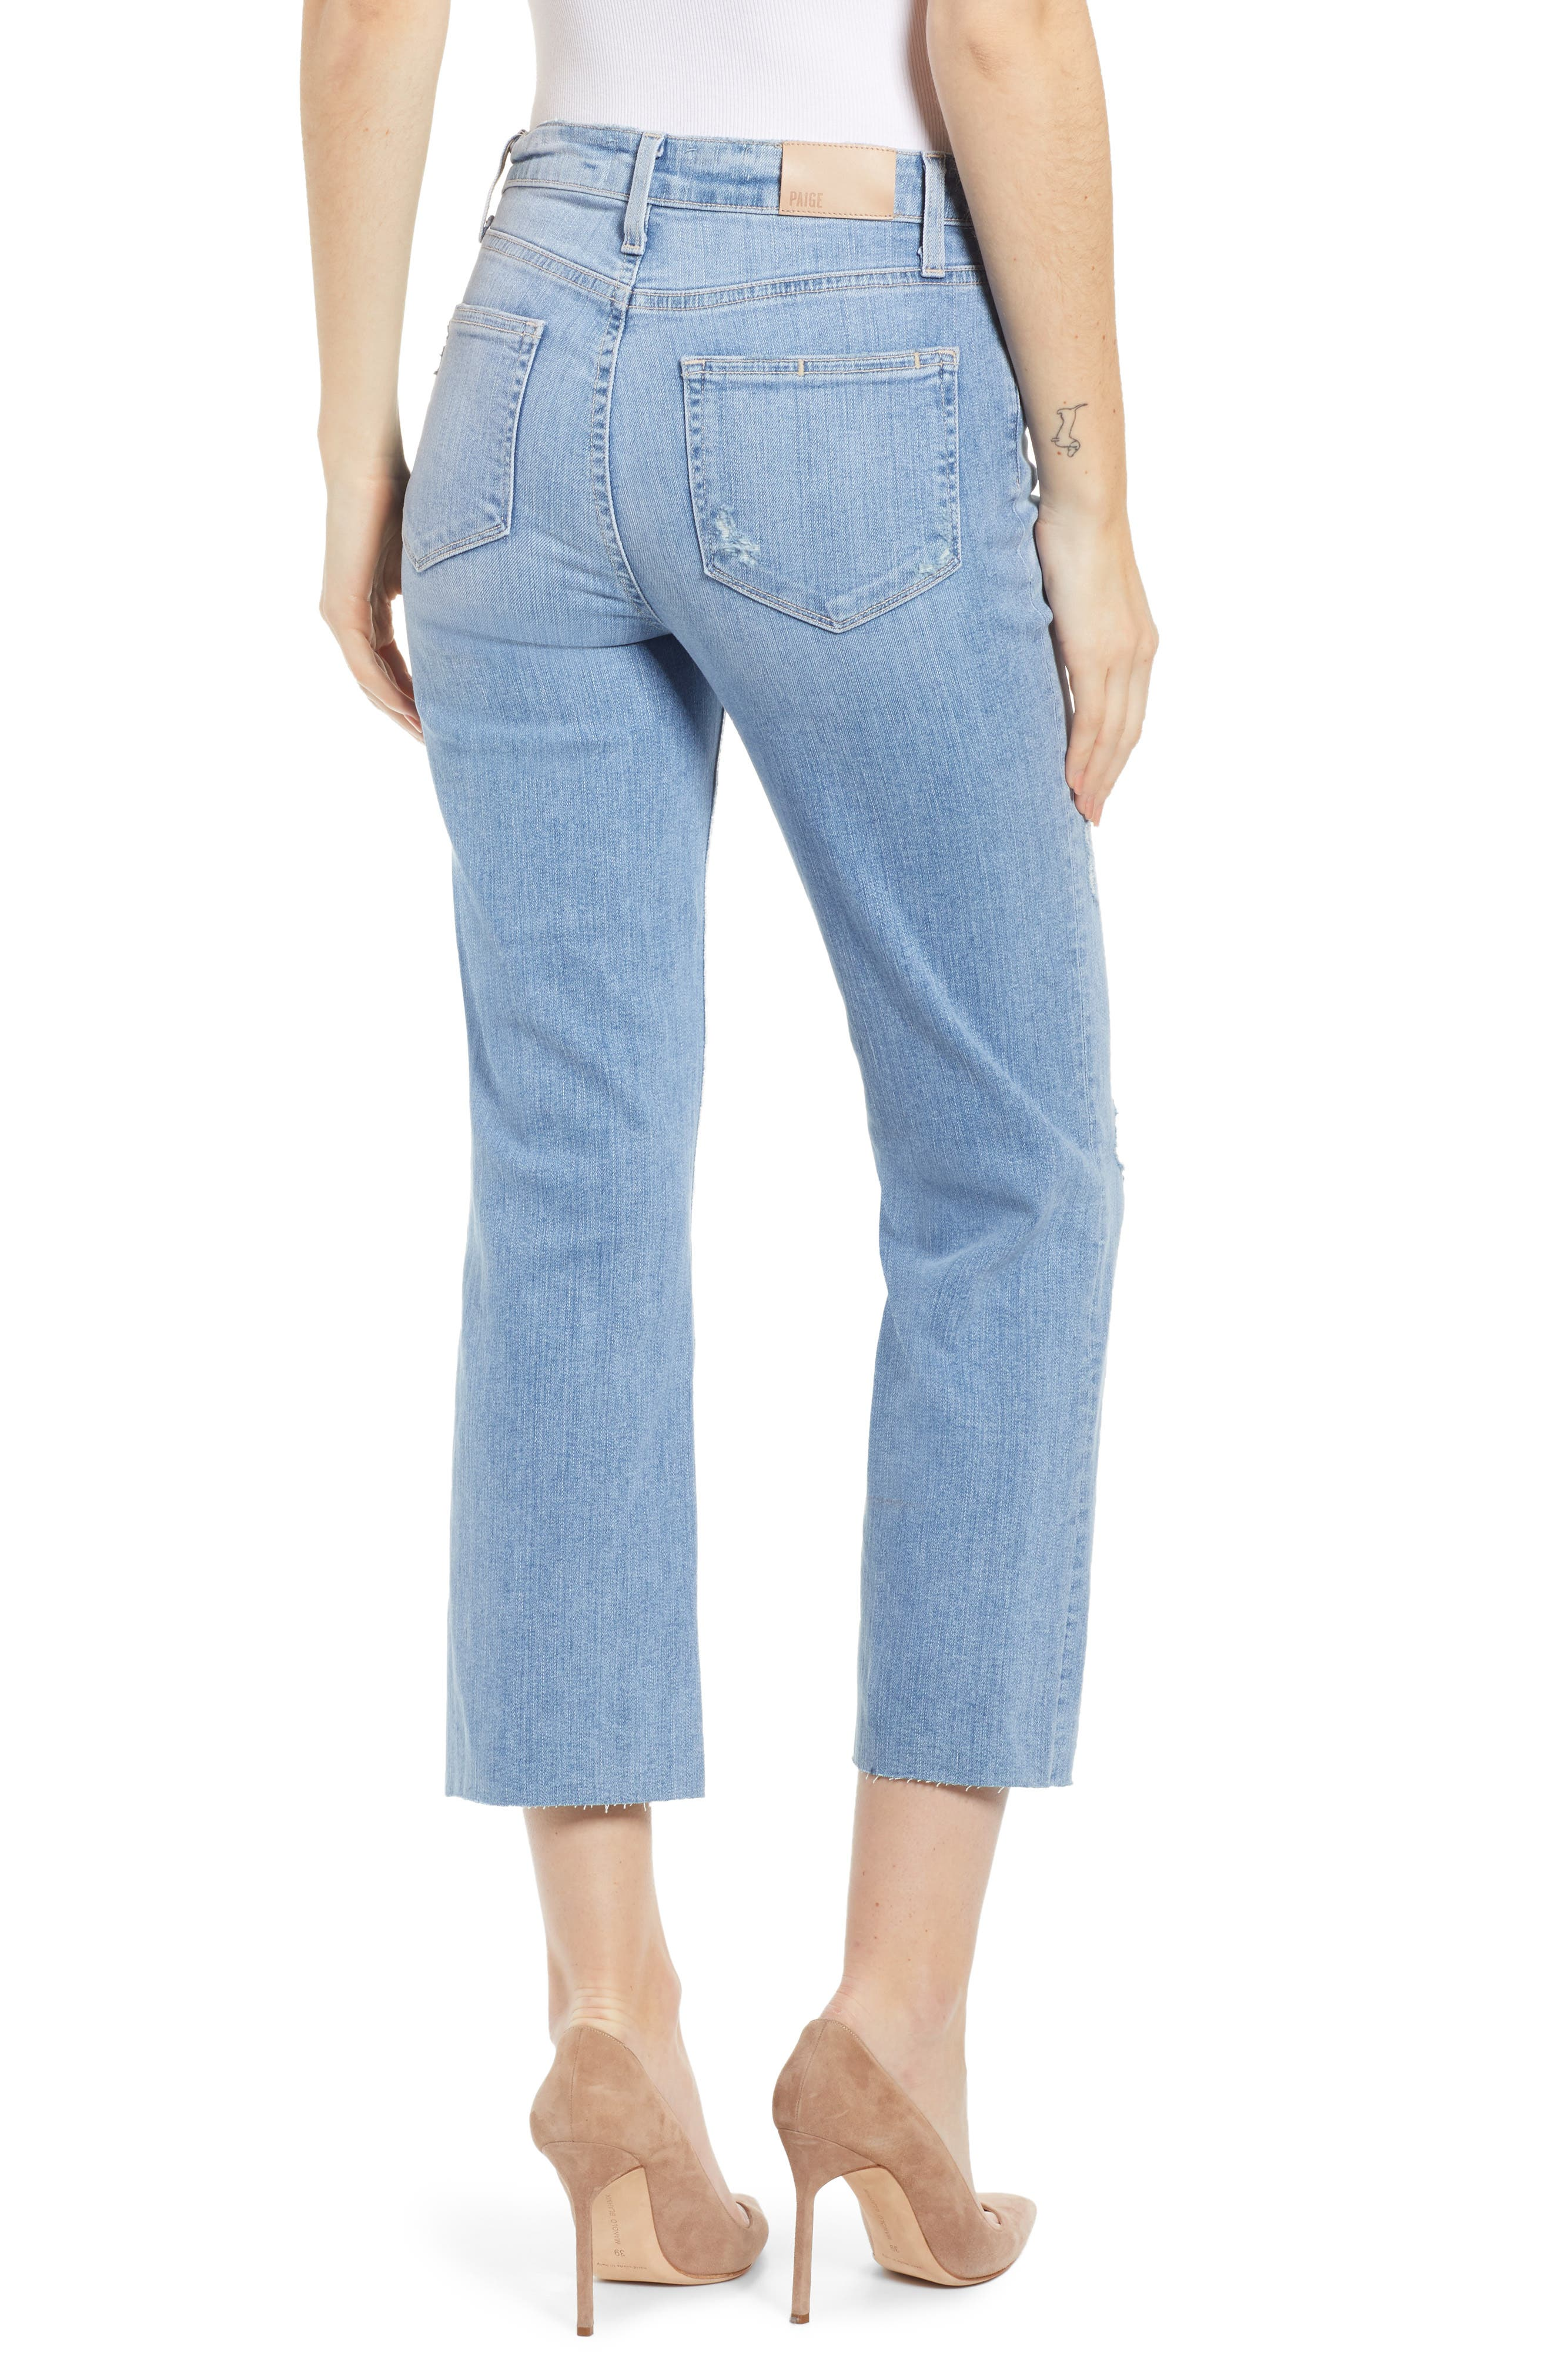 PAIGE, Atley Ripped Raw Hem Ankle Flare Jeans, Alternate thumbnail 2, color, FLORETTA DESTRUCTED